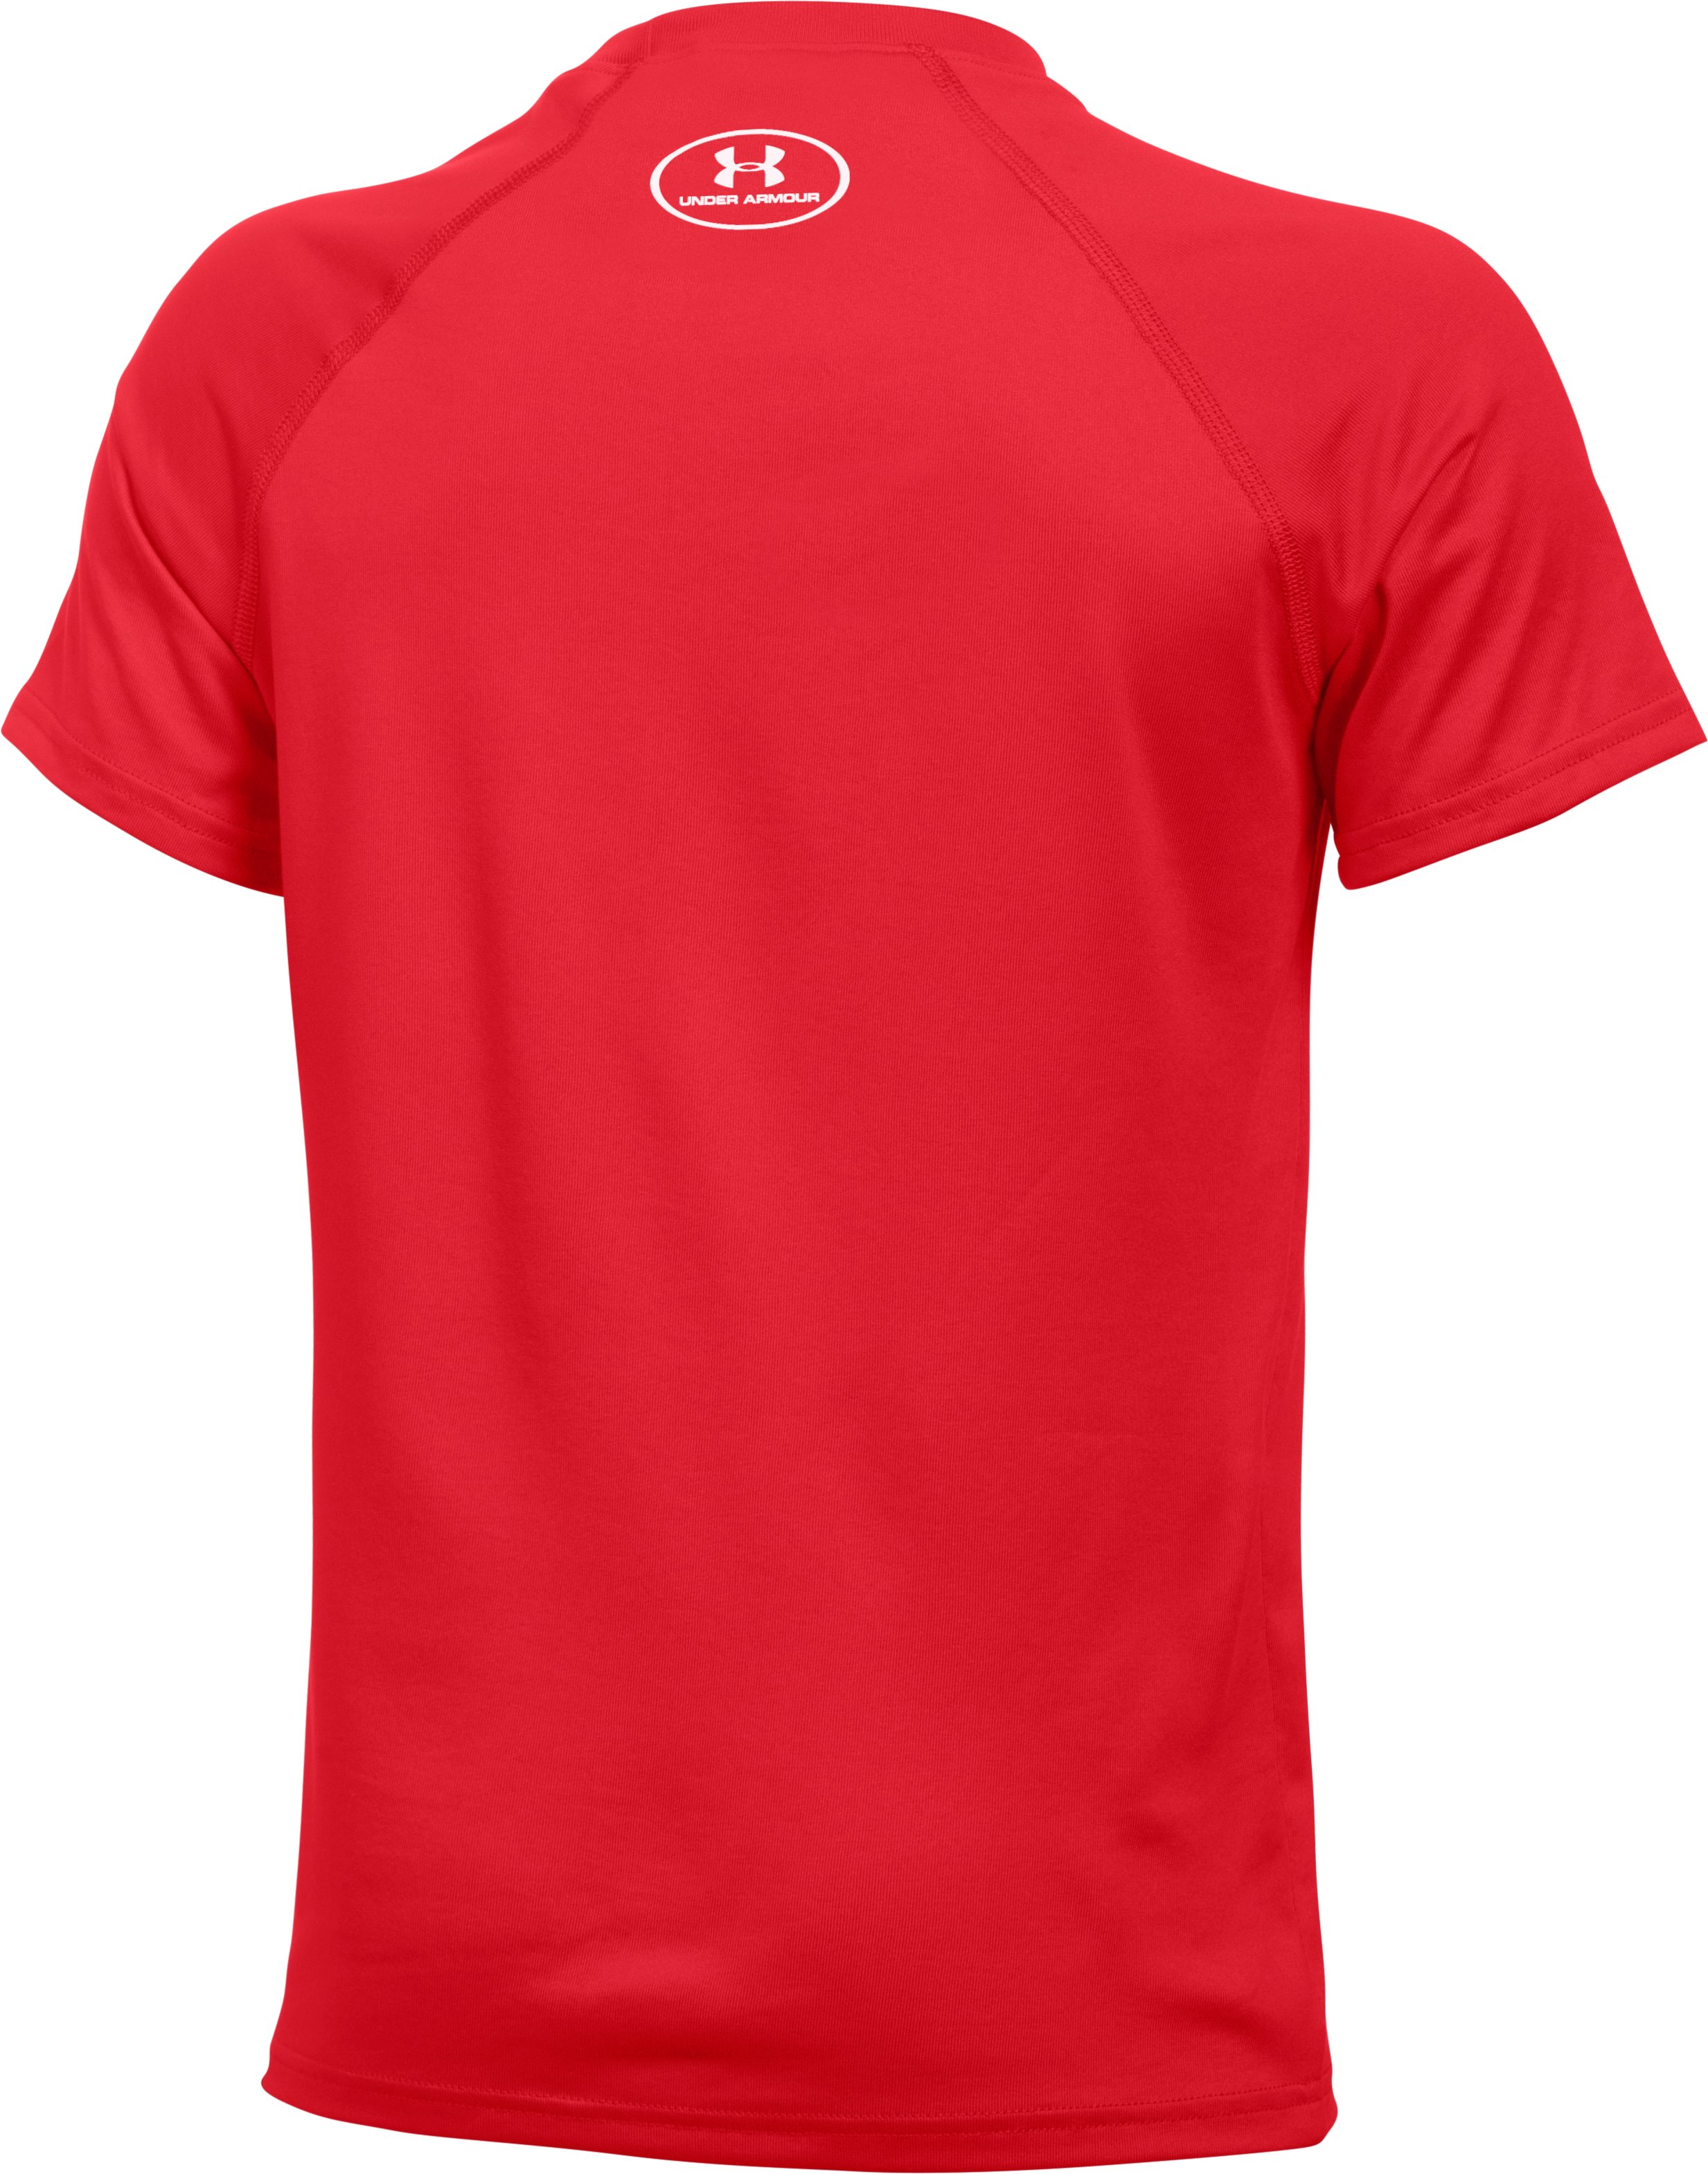 Boys' UA Locker Short Sleeve T-Shirt, Red